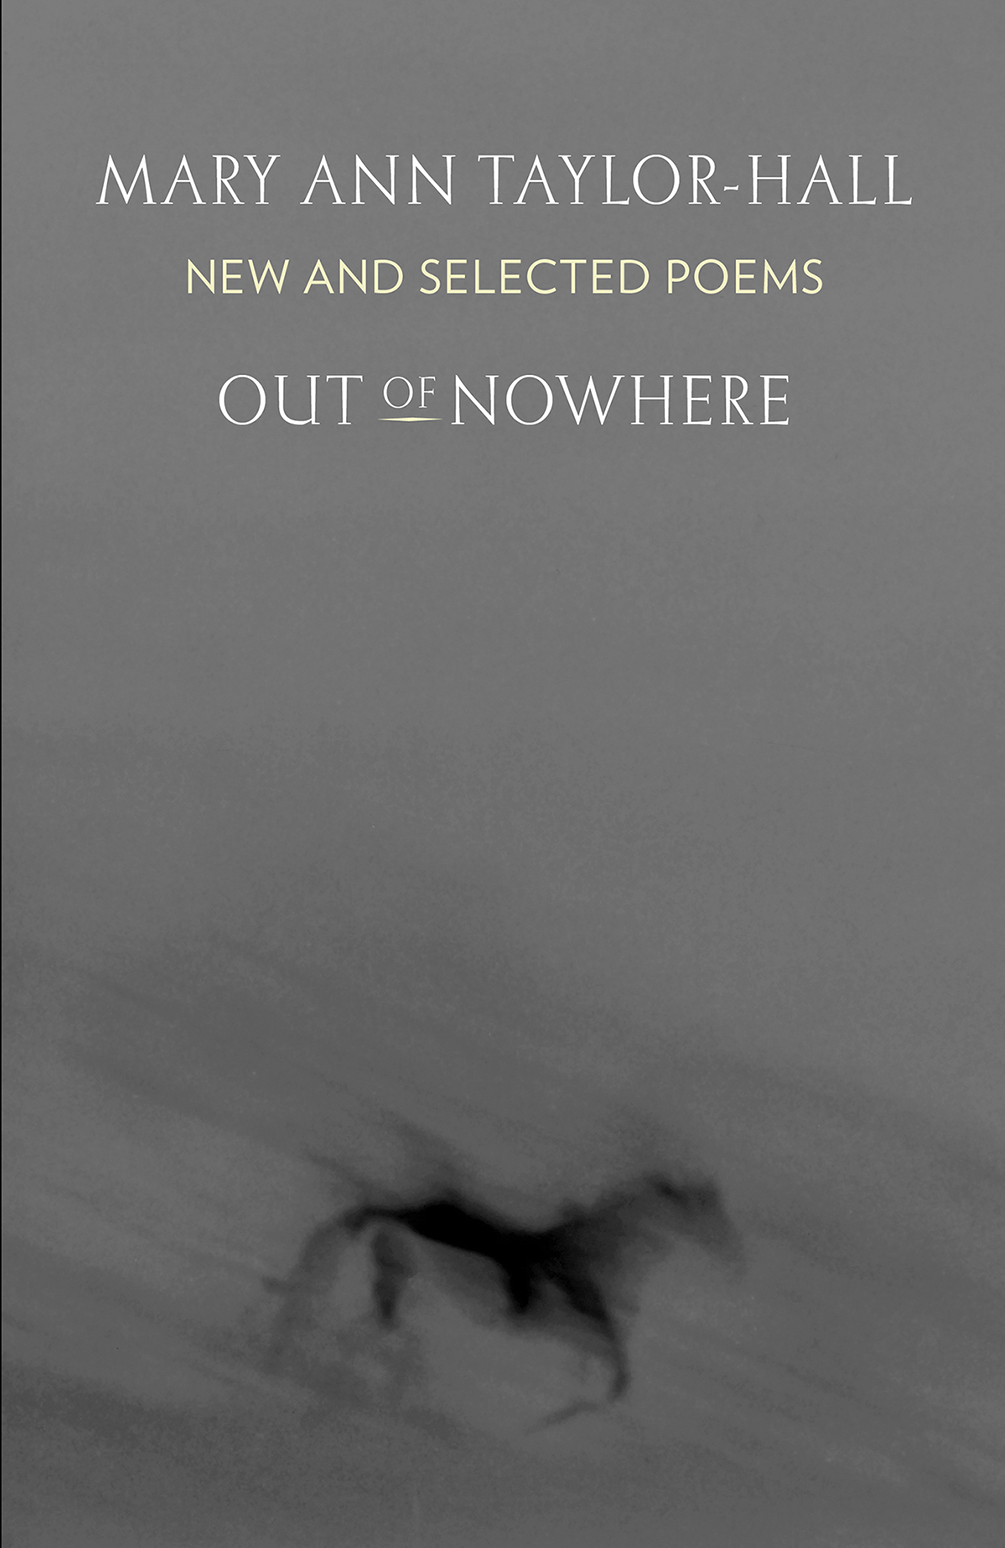 Out of Nowhere: New and Selected Poems